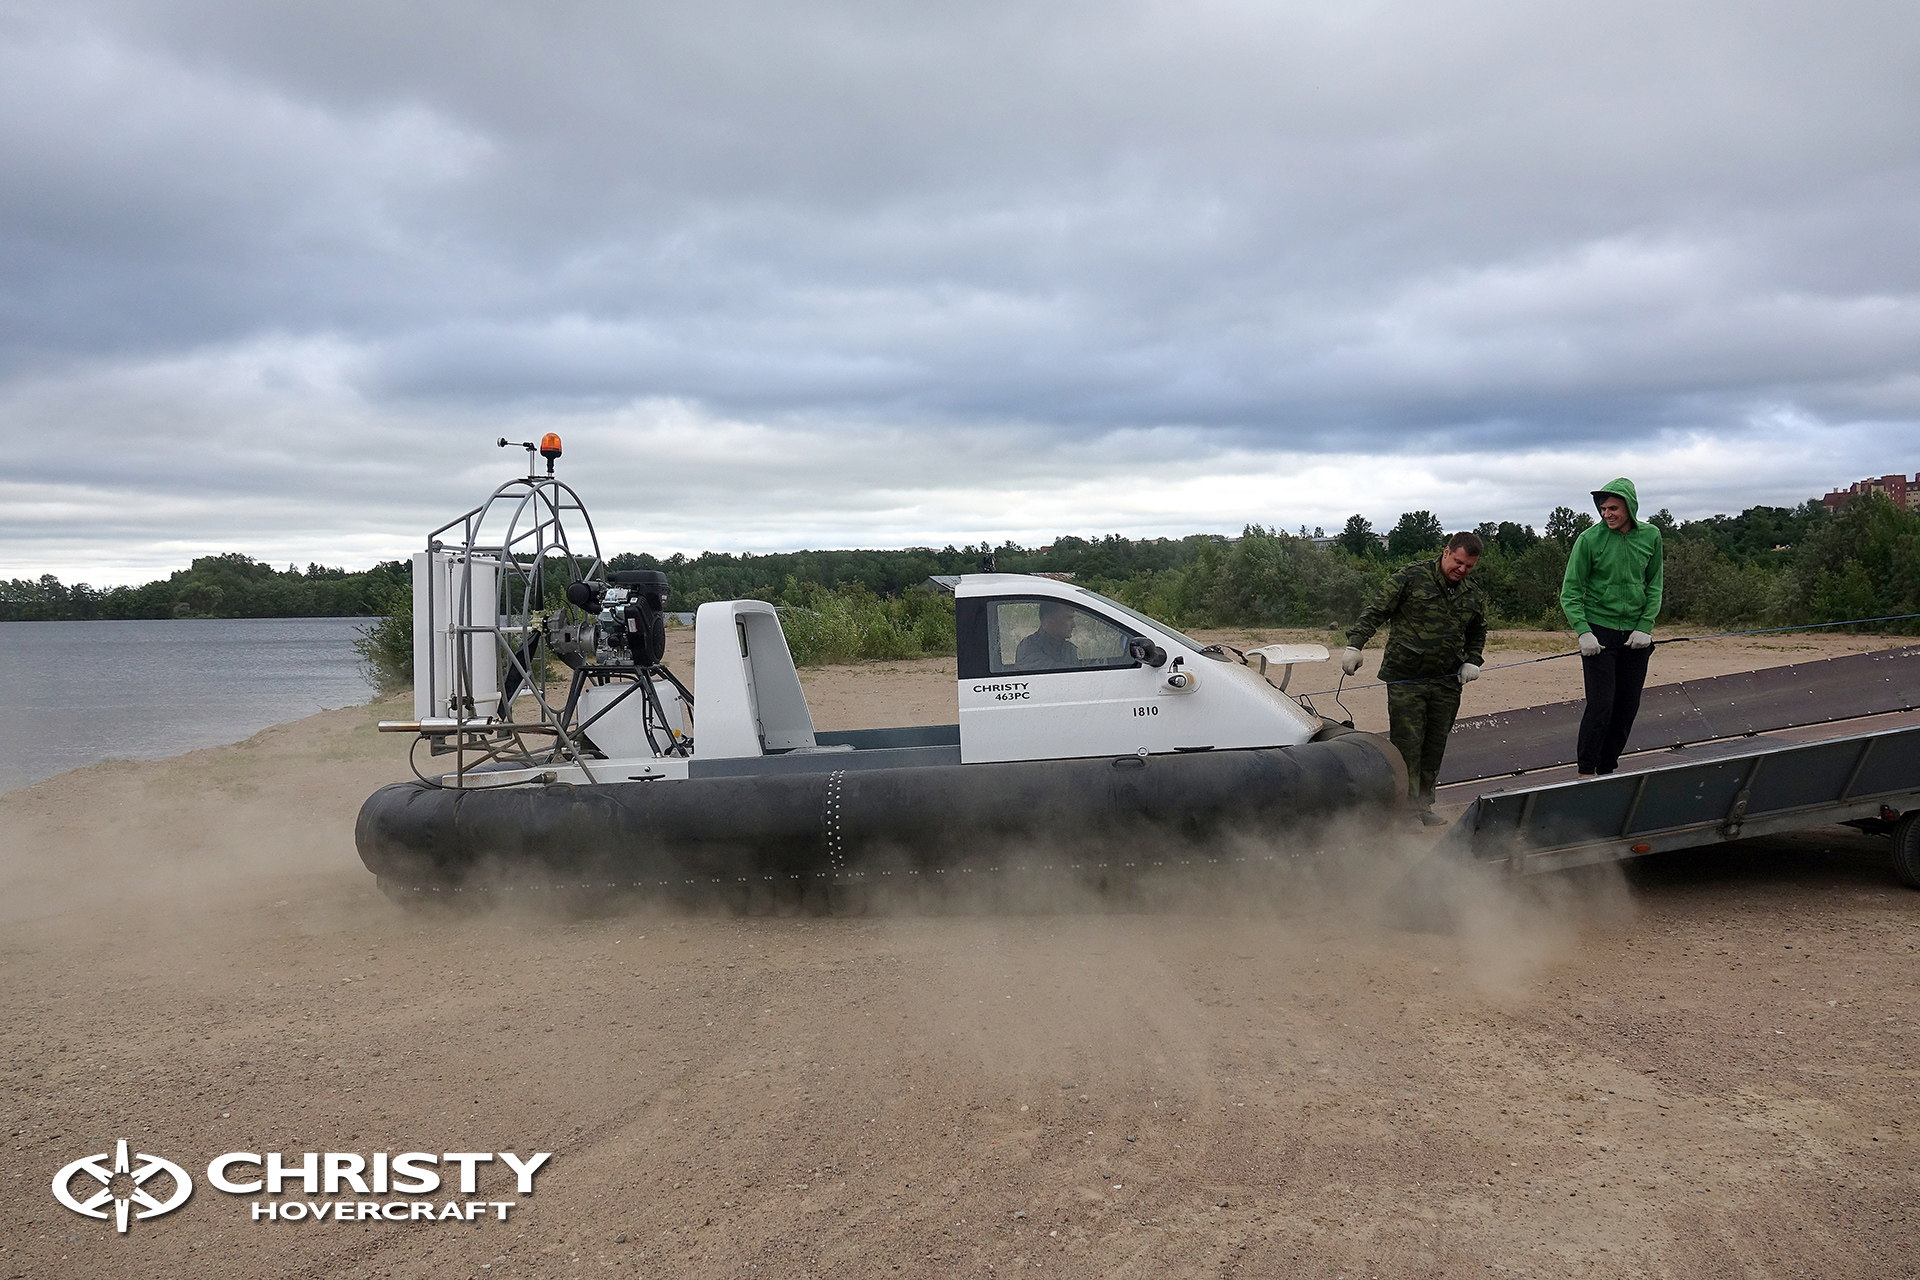 Hovercraft Christy 463 PC in Storm 290618 27.jpg | фото №24